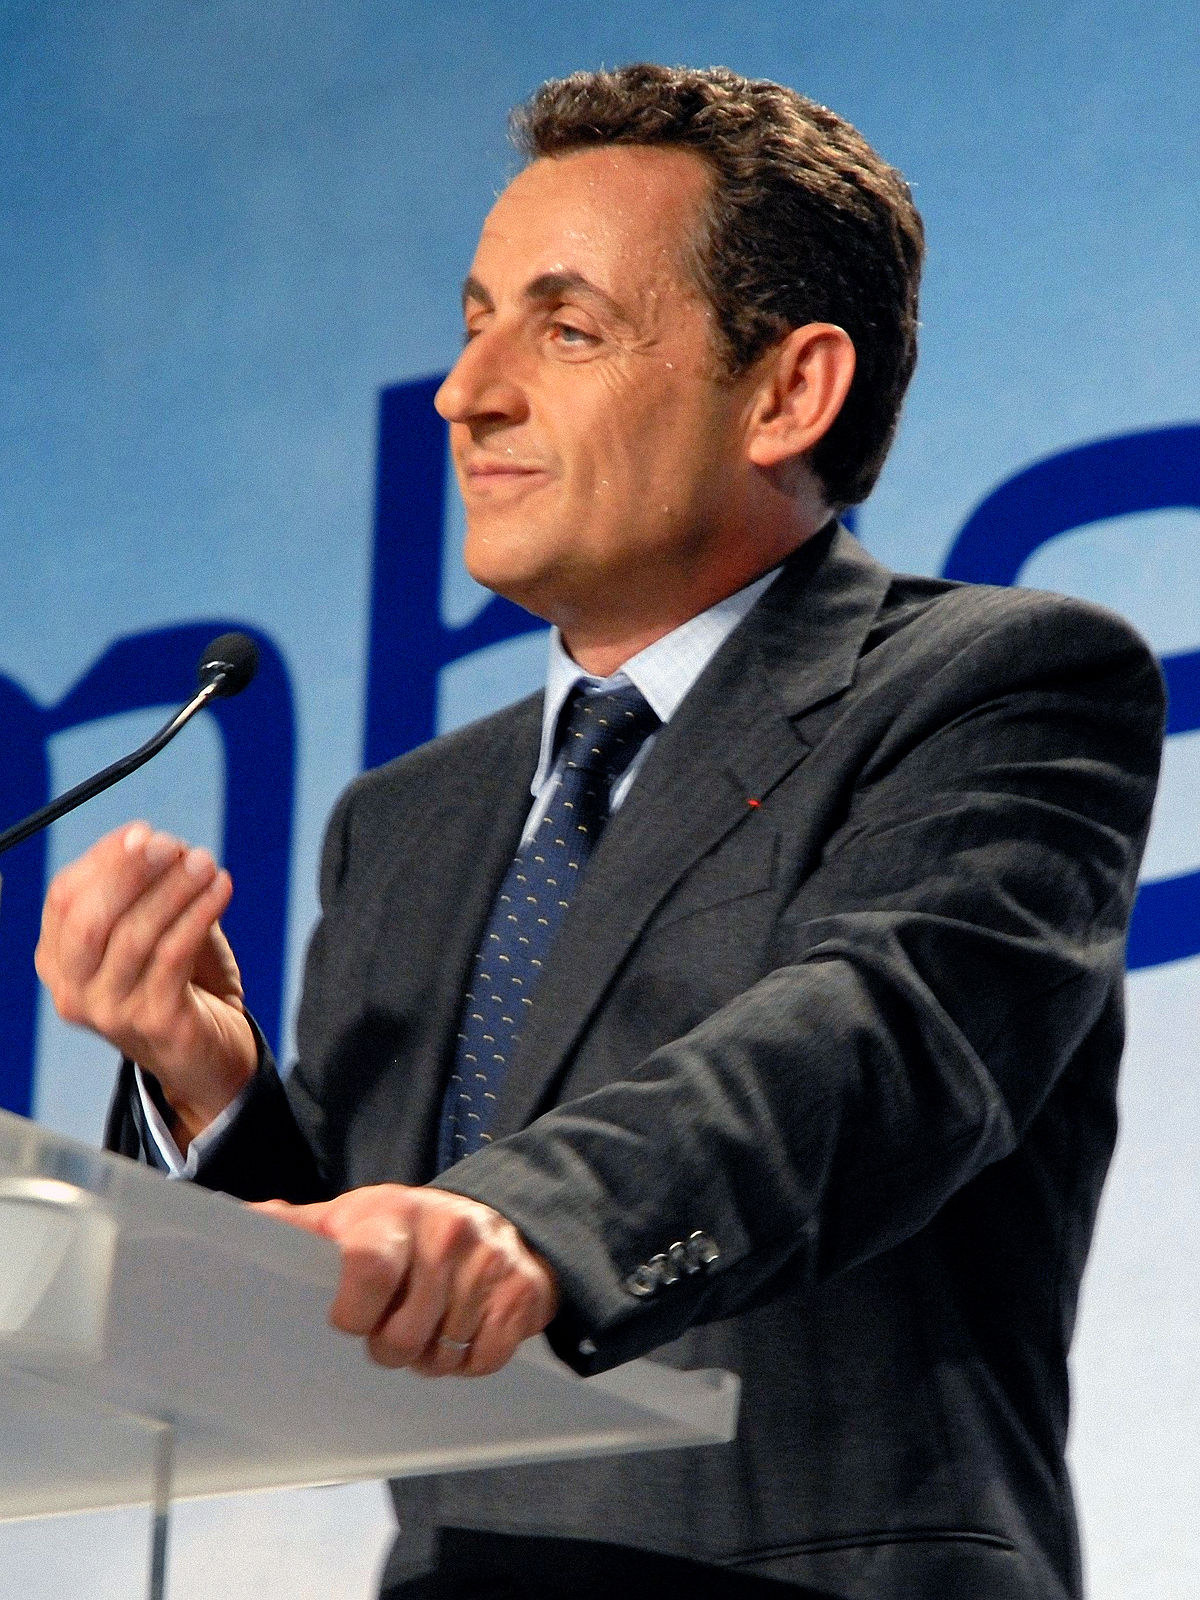 sarkozy - photo #26